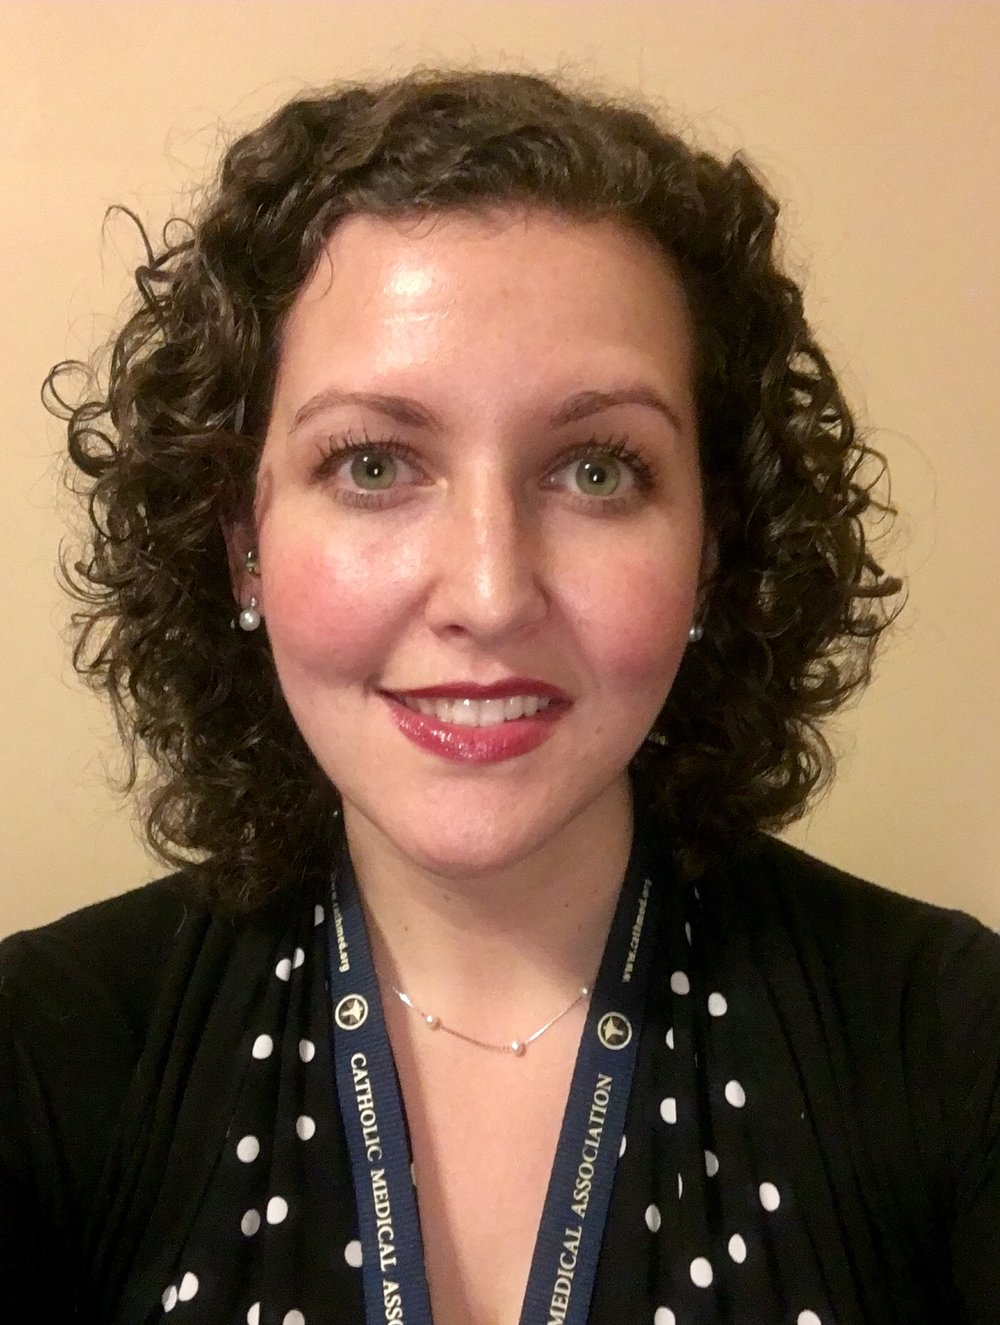 """<a href=""""#"""" data-featherlight=""""#bio-johnson""""><p style=""""line-height: 1.5em""""><font size=""""3"""">Dr. Kimberly Johnson - MD<br>Event Coordinator</font></p></a>"""